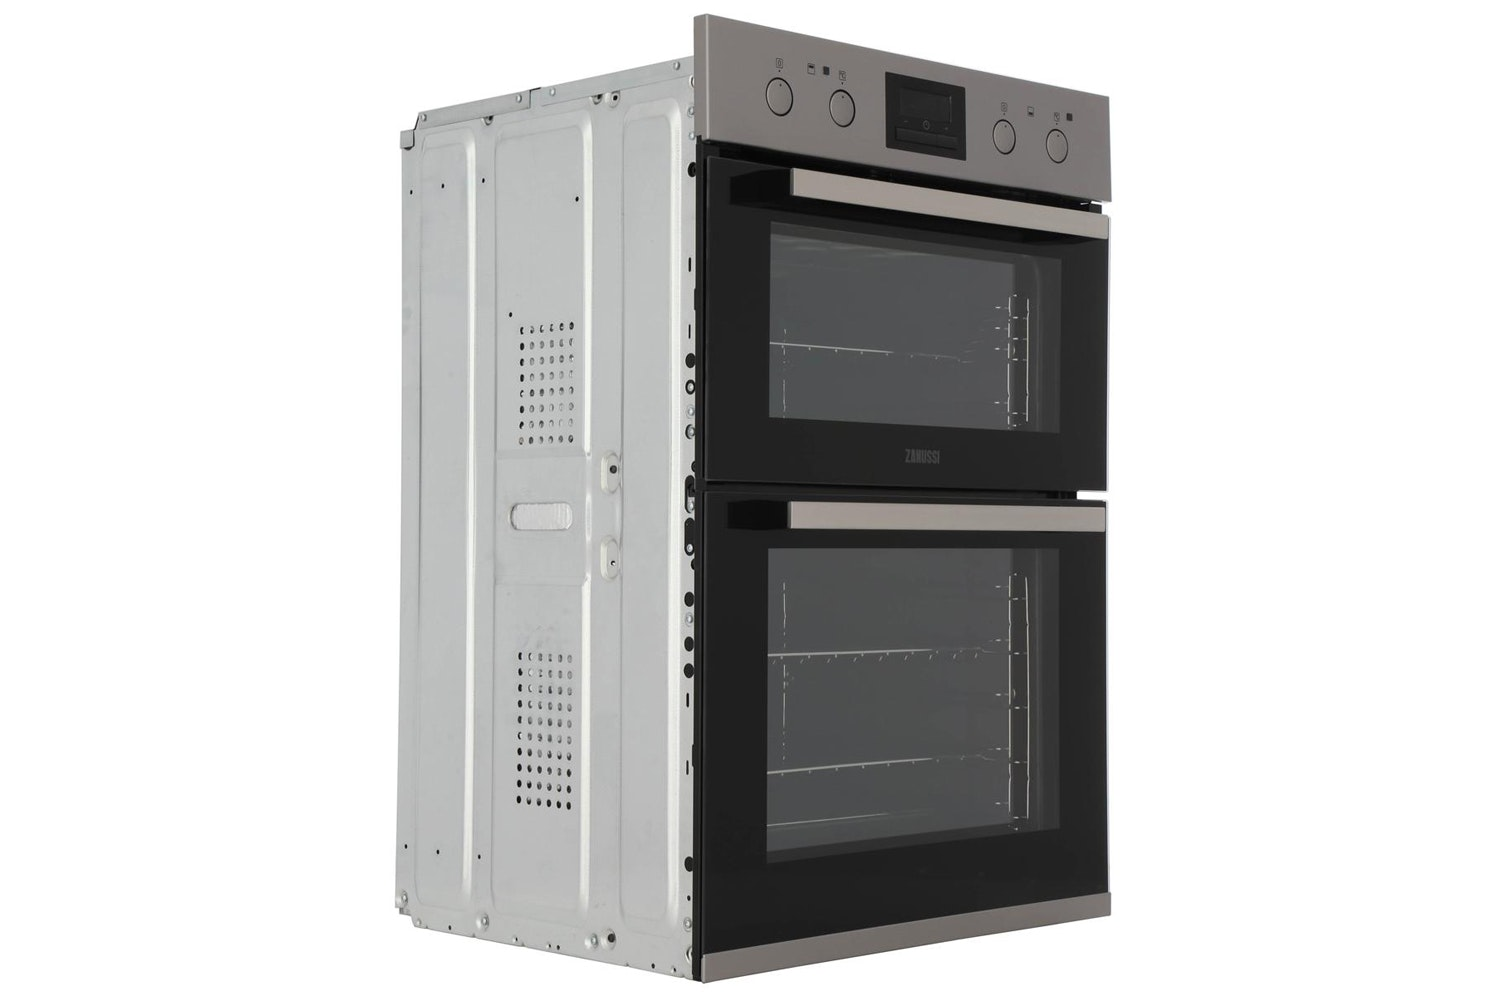 Zanussi Built In Electric Double Oven Stainless Steel | ZOD35802XK